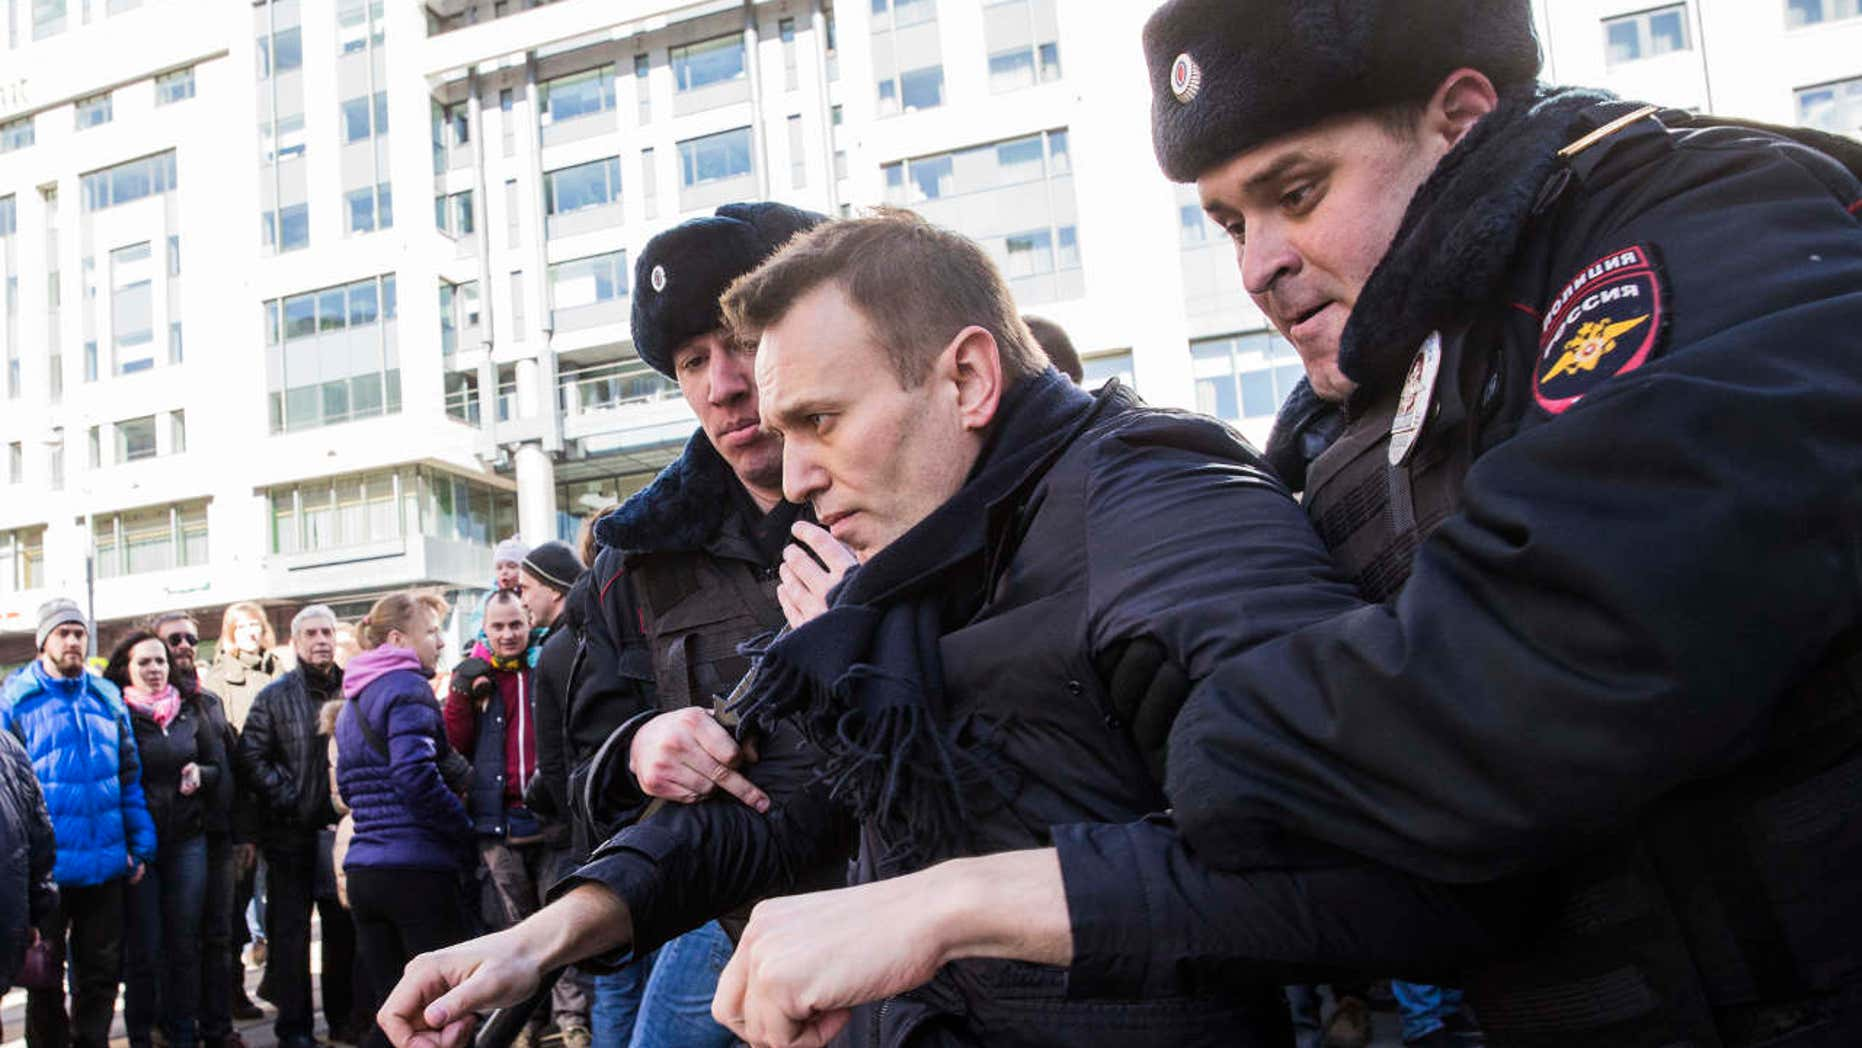 In this photo provided by Evgeny Feldman, Alexei Navalny is detained by police in downtown Moscow, Russia, Sunday, March 26, 2017.